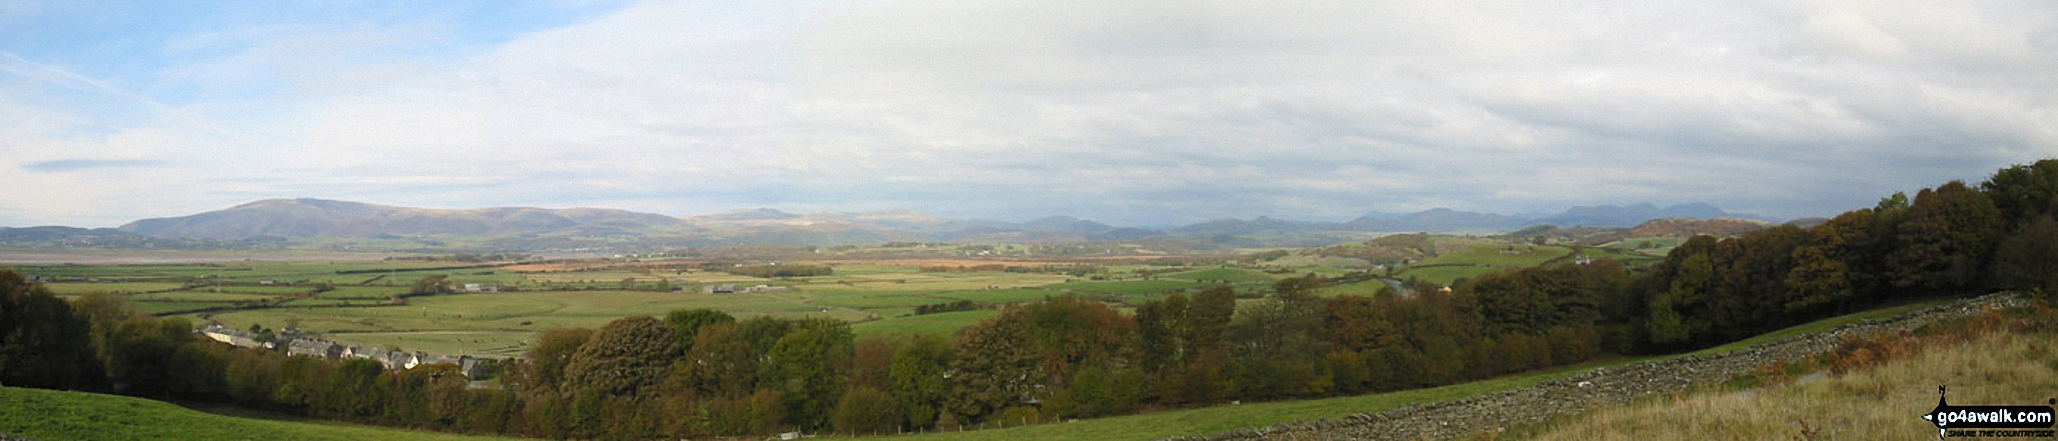 The Southern Fells from Black Combe to The Old Man of Coniston from Kirkby-in-Furness